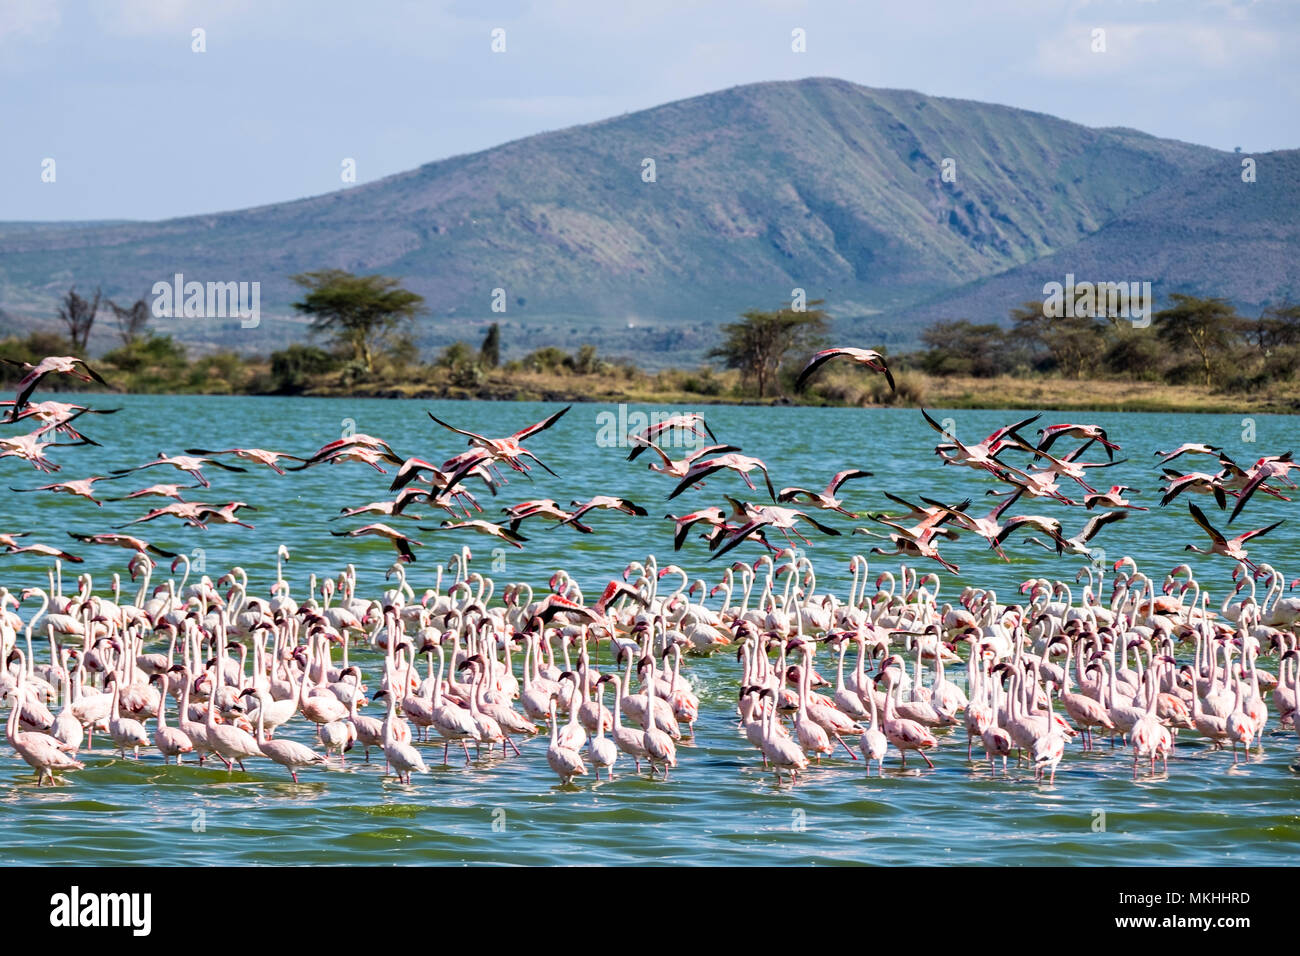 Lesser Flamingo (Phoeniconaias minor) and Greater Flamingo (Phoenicopterus roseus), Elmenteita Lake, Soysambu Conservation Area, Kenya - Stock Image